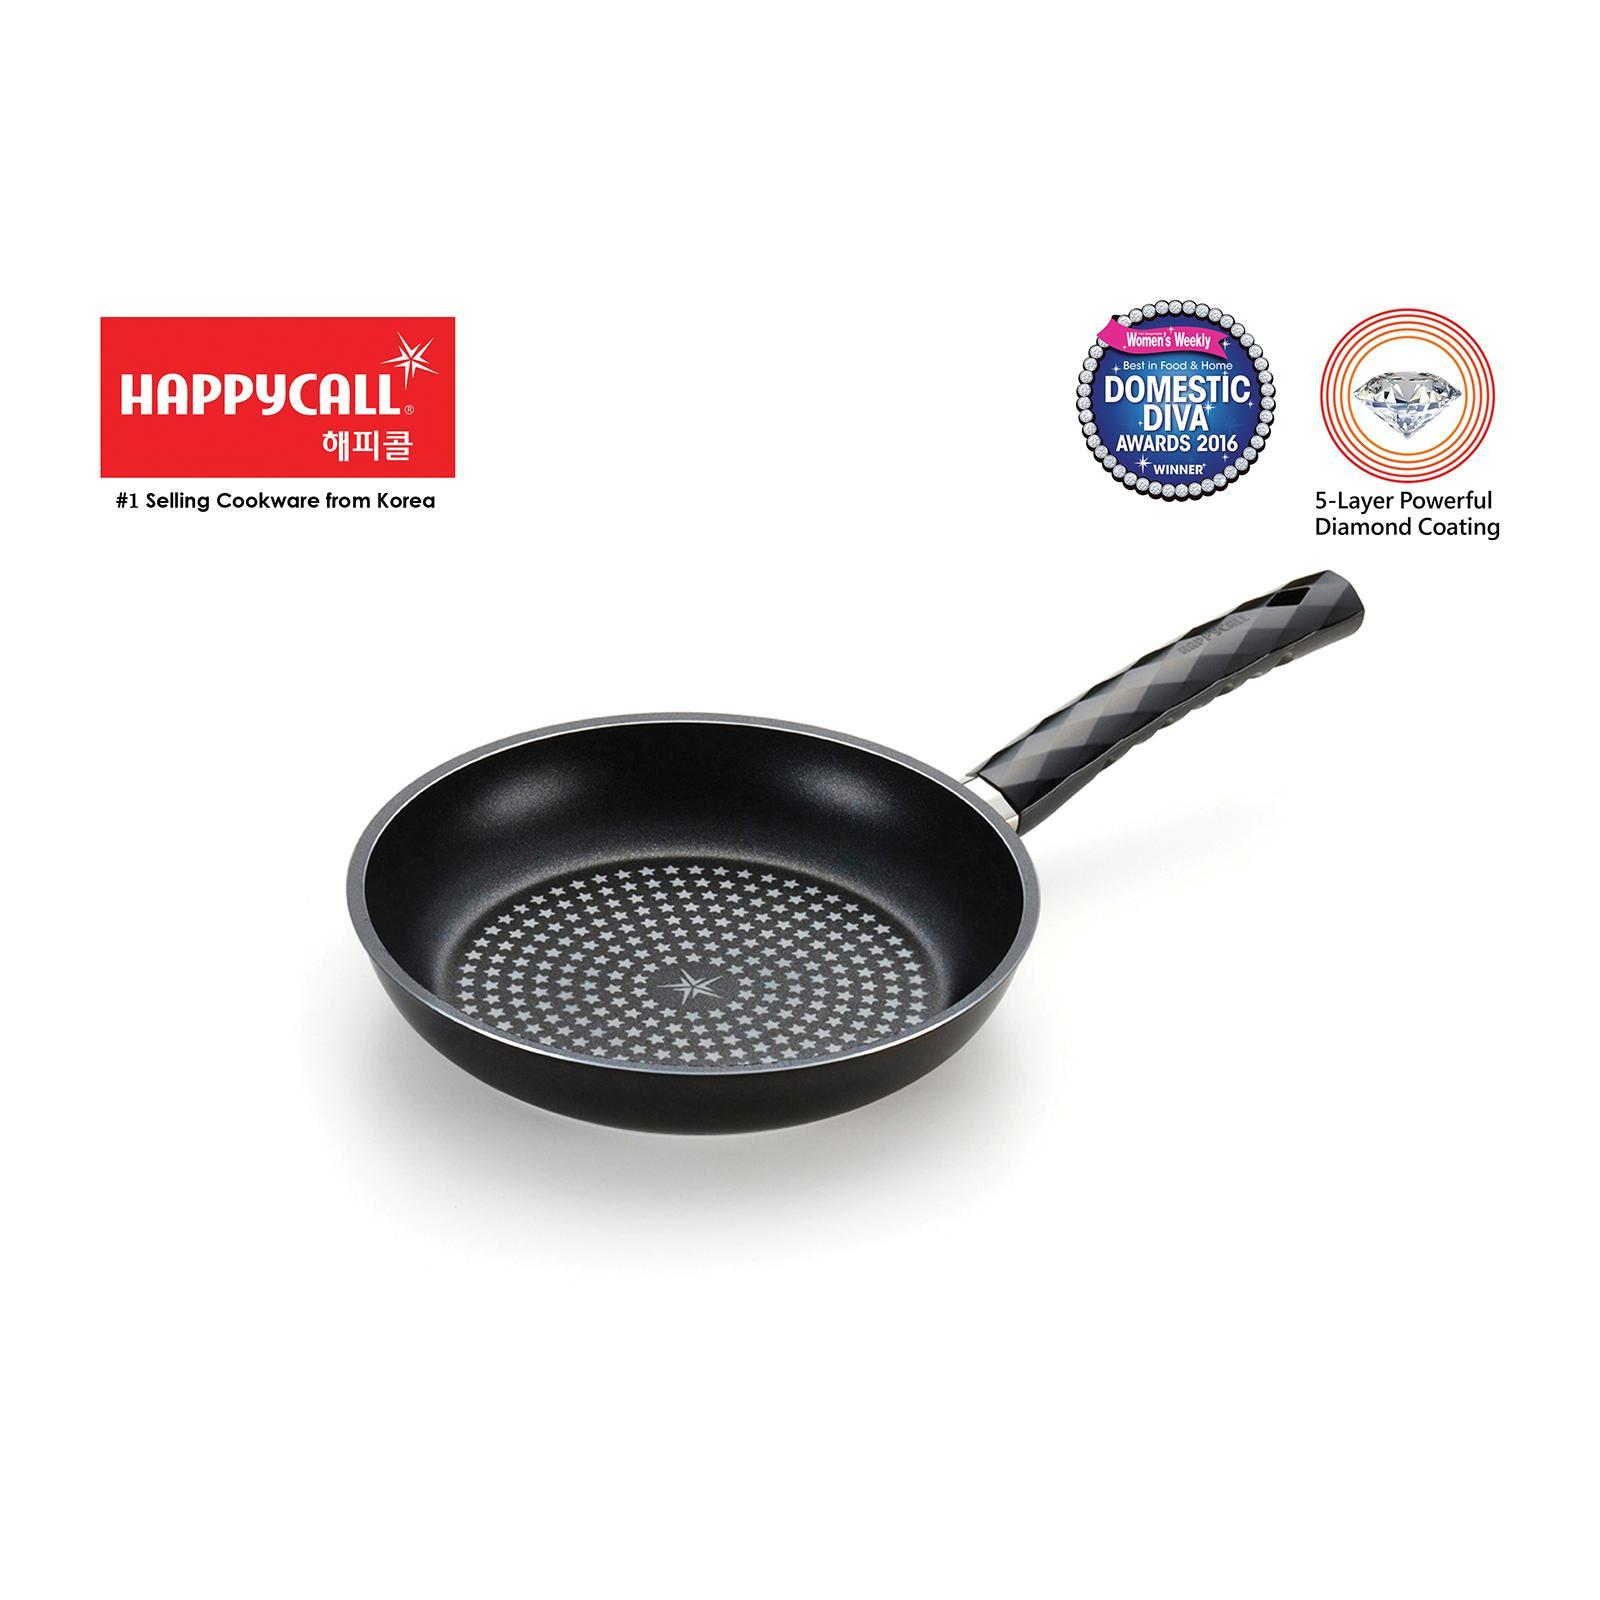 Happycall Diamond Frying Pan 24Cm - By ToTT